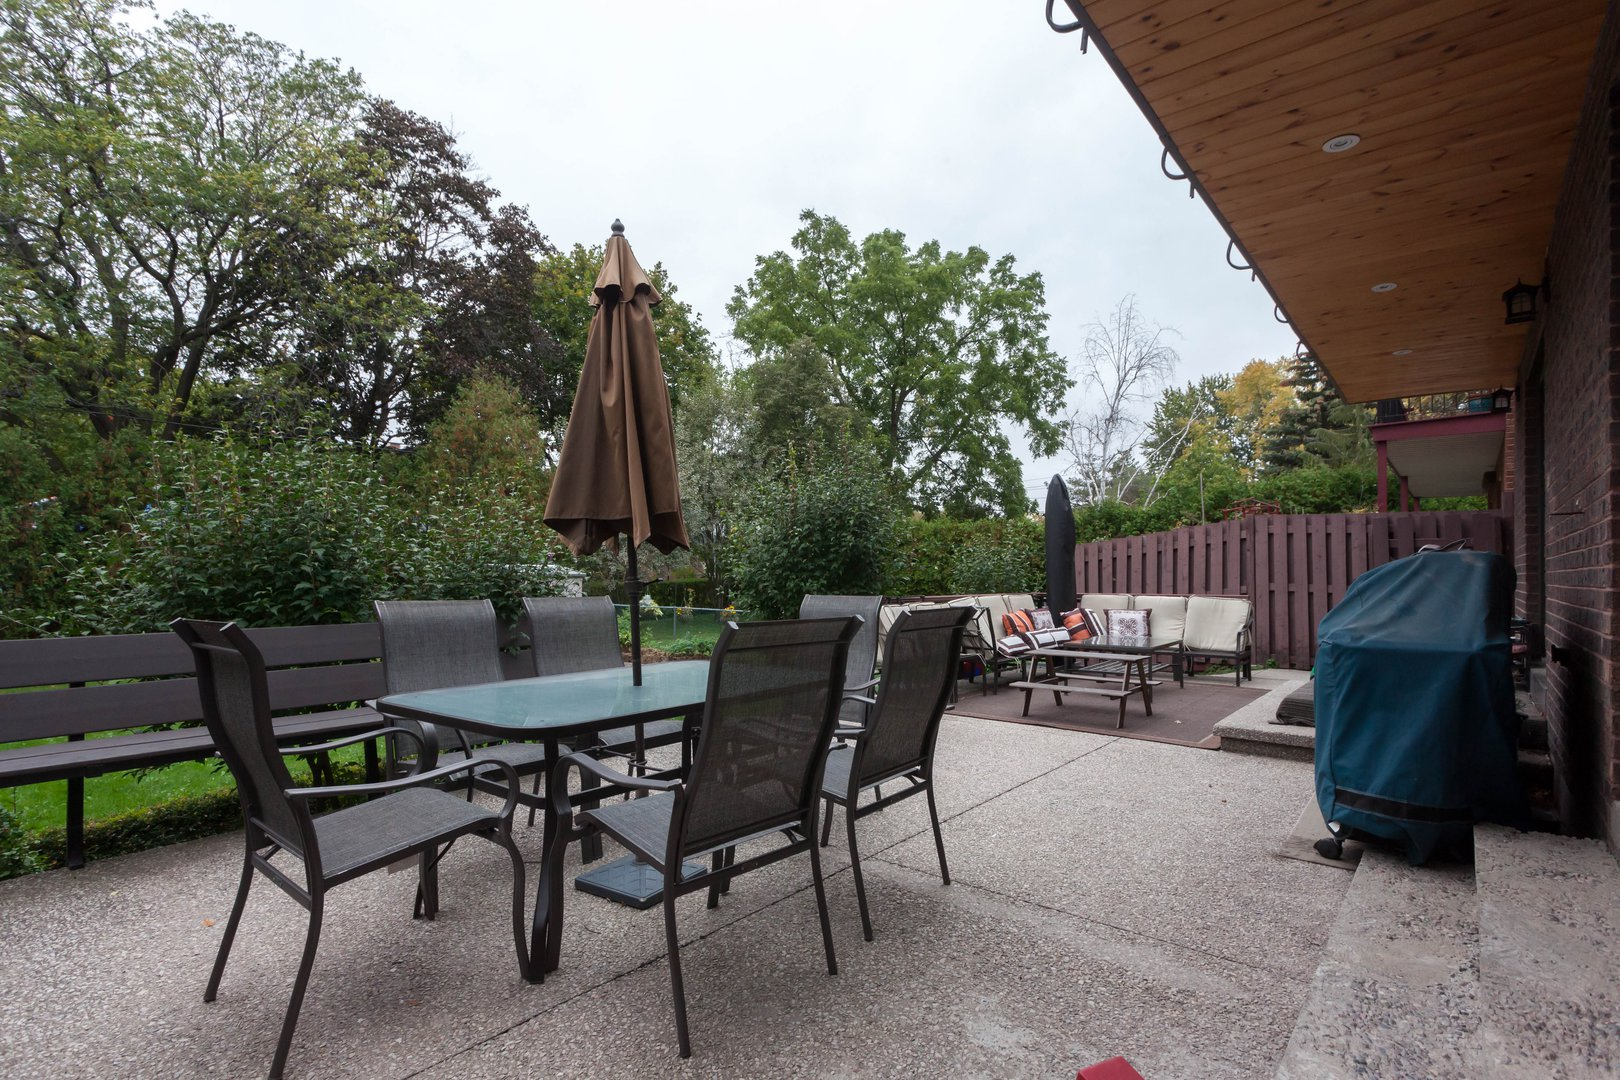 House for rent at 84 Laurel Avenue, Etobicoke, ON. This is the patio terrace.